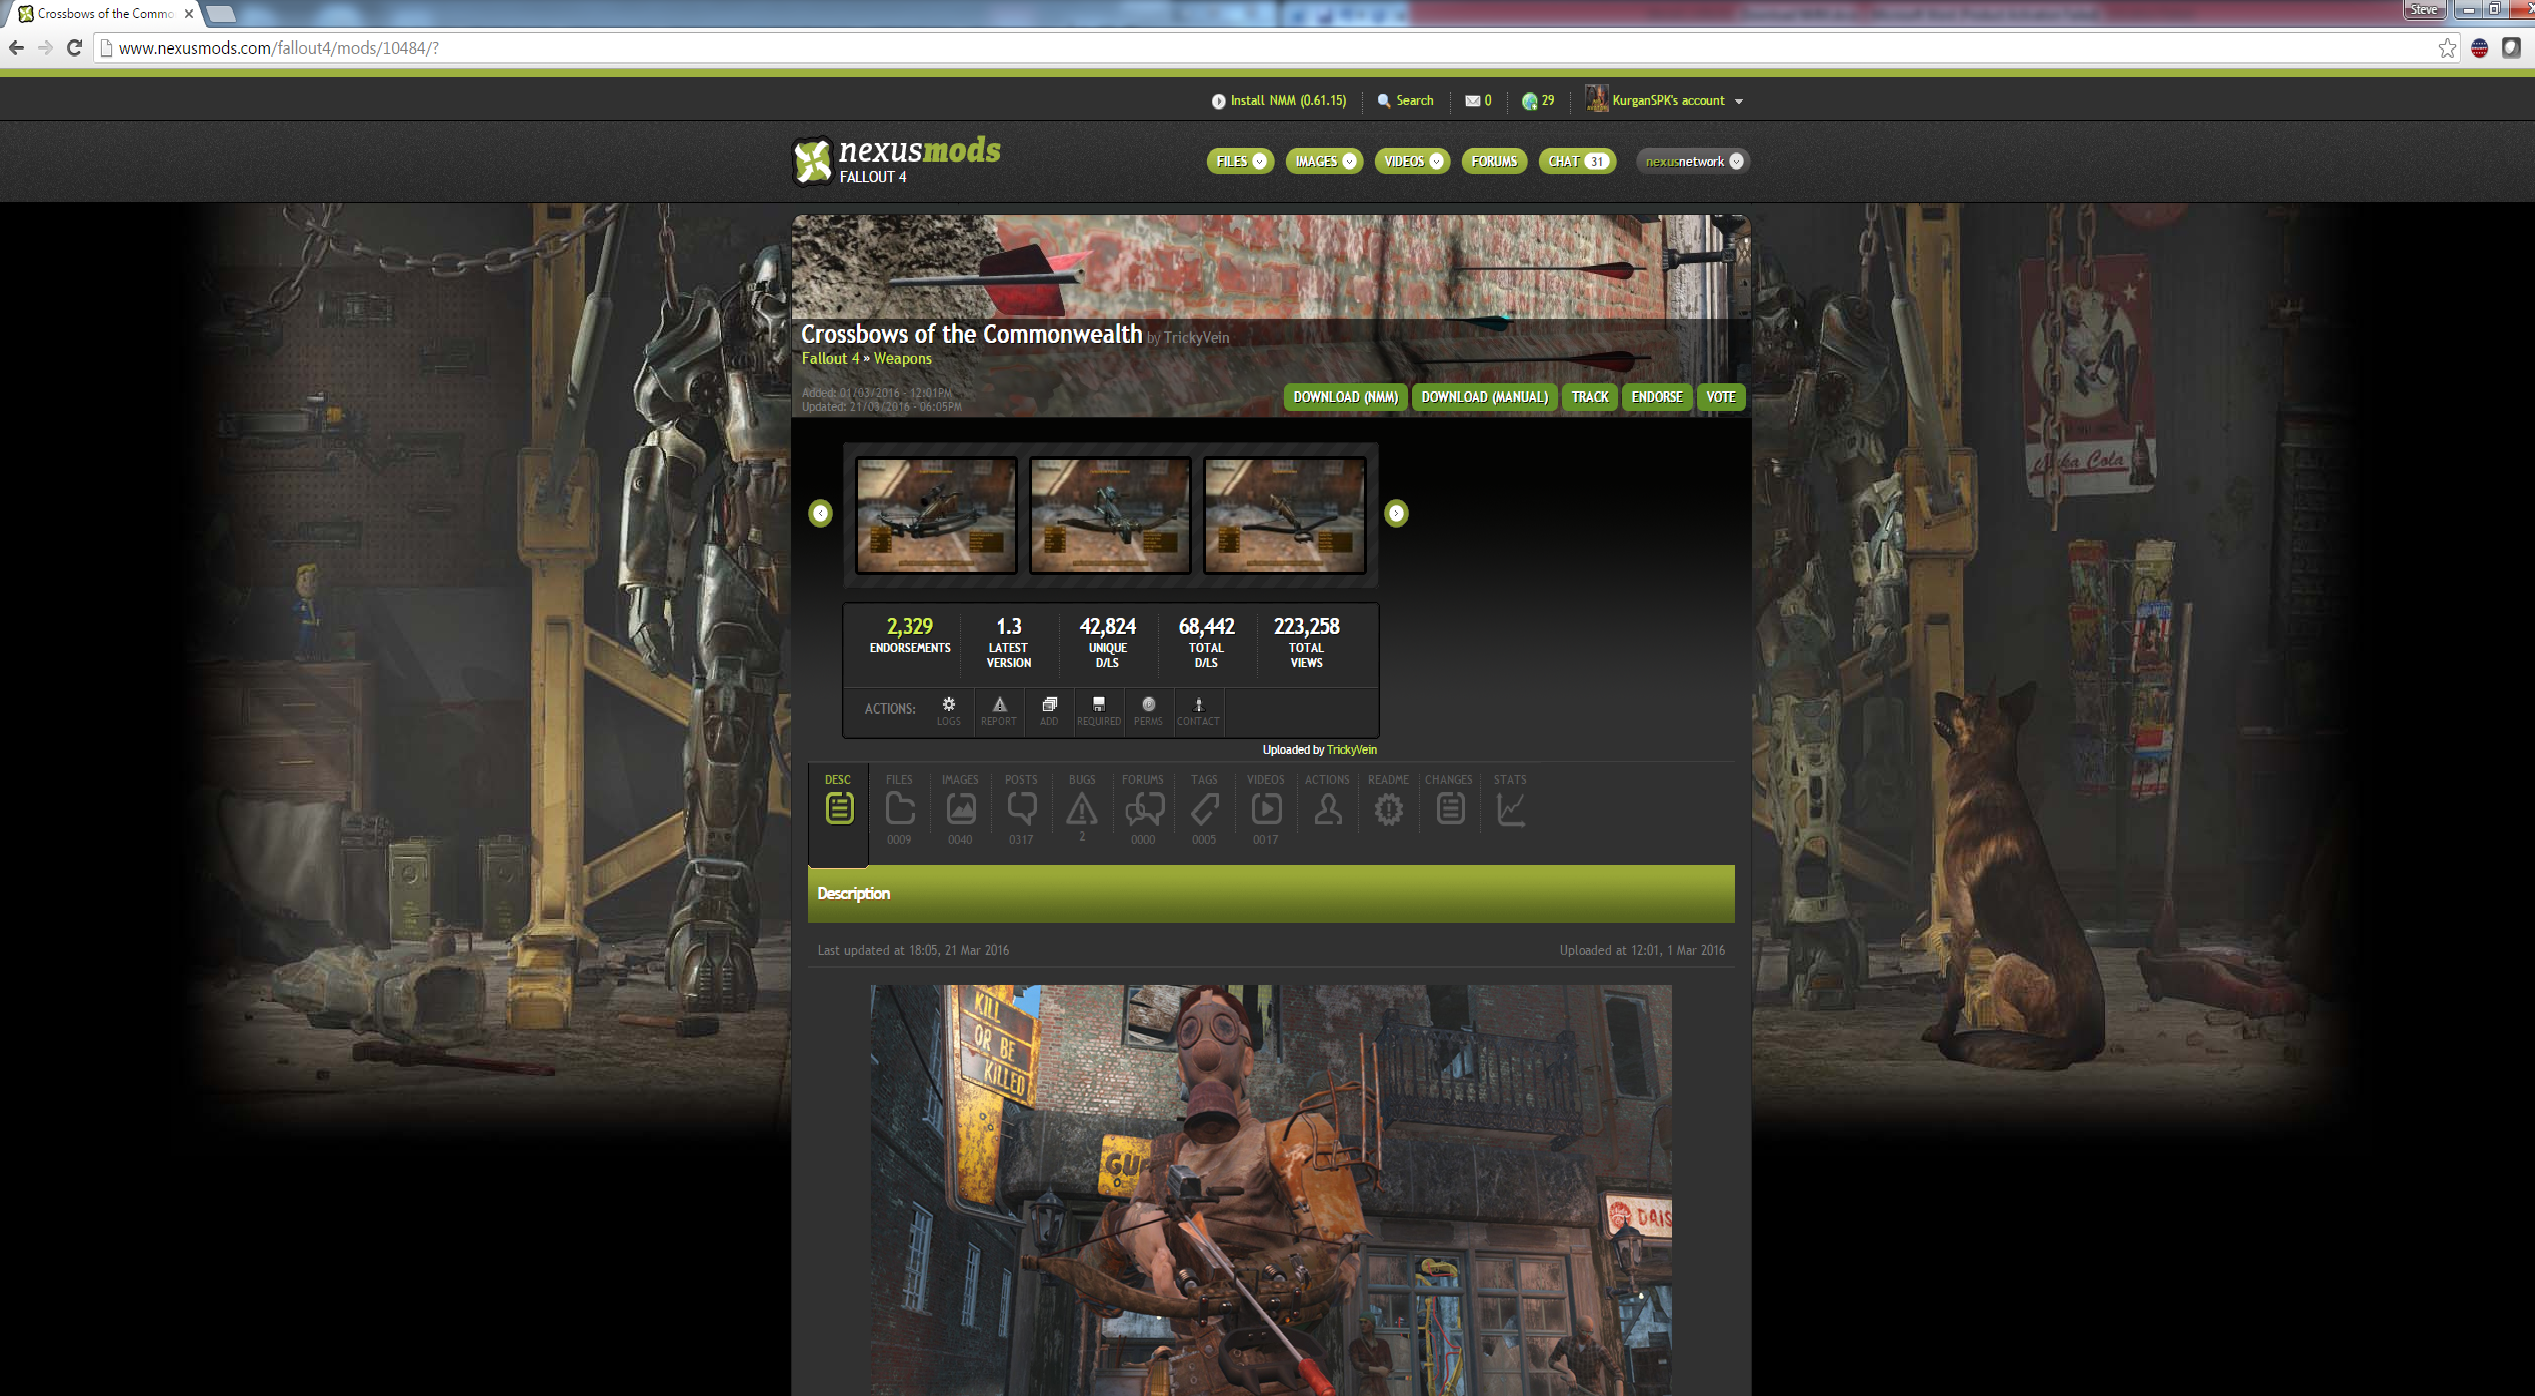 How To Add Crossbows To Fallout 4 Geforce